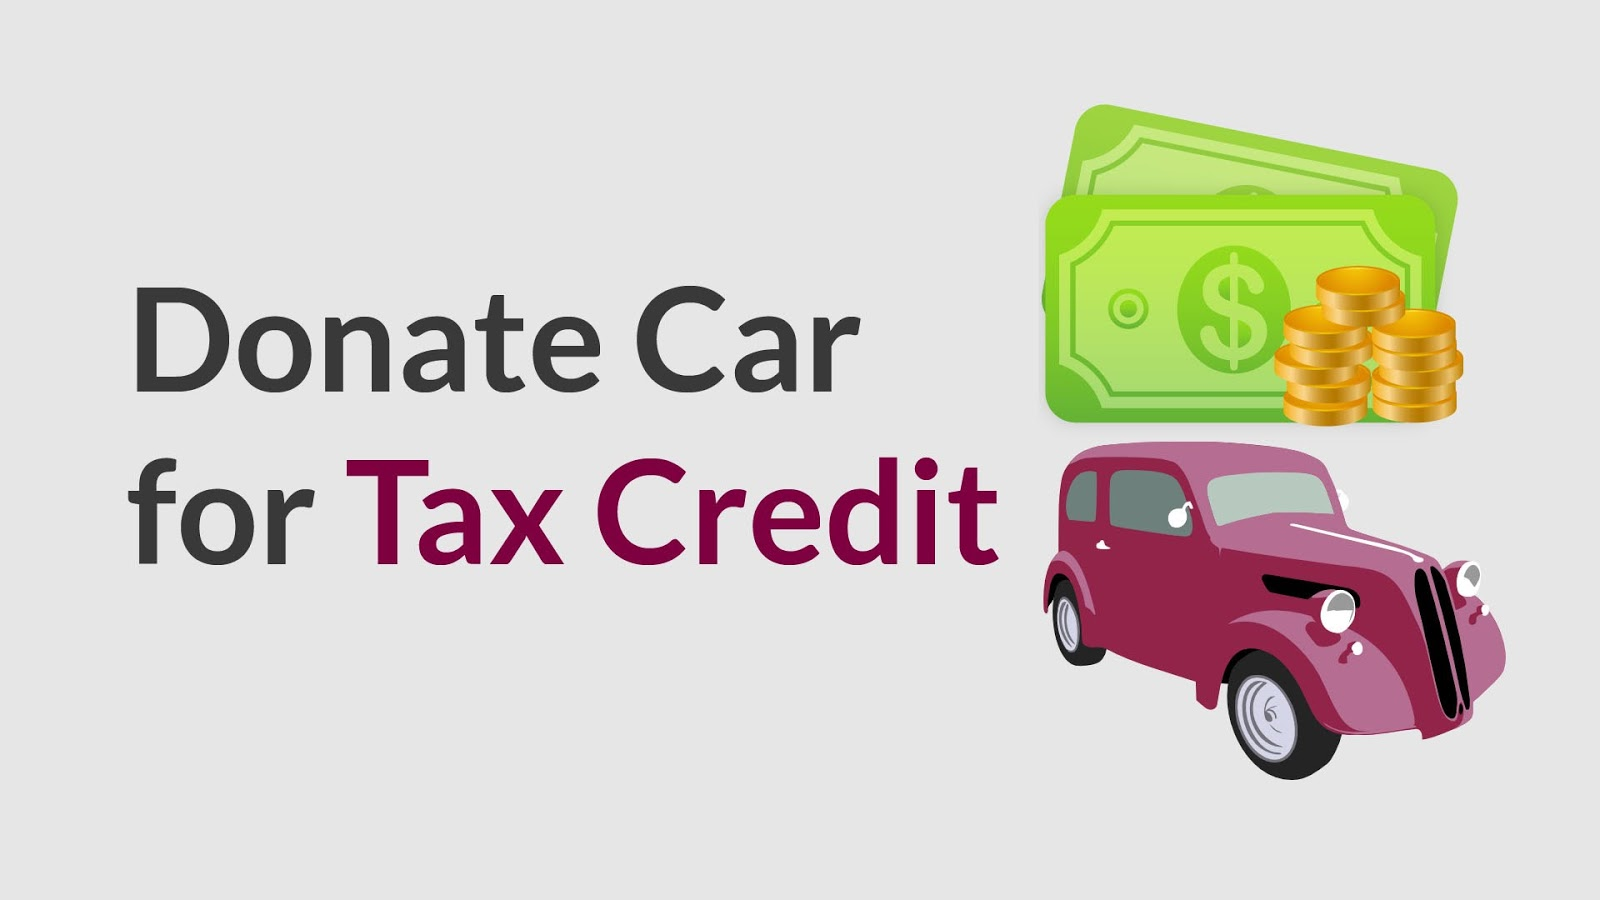 Charity Motors Car Donation: Donate Car For Tax Credit